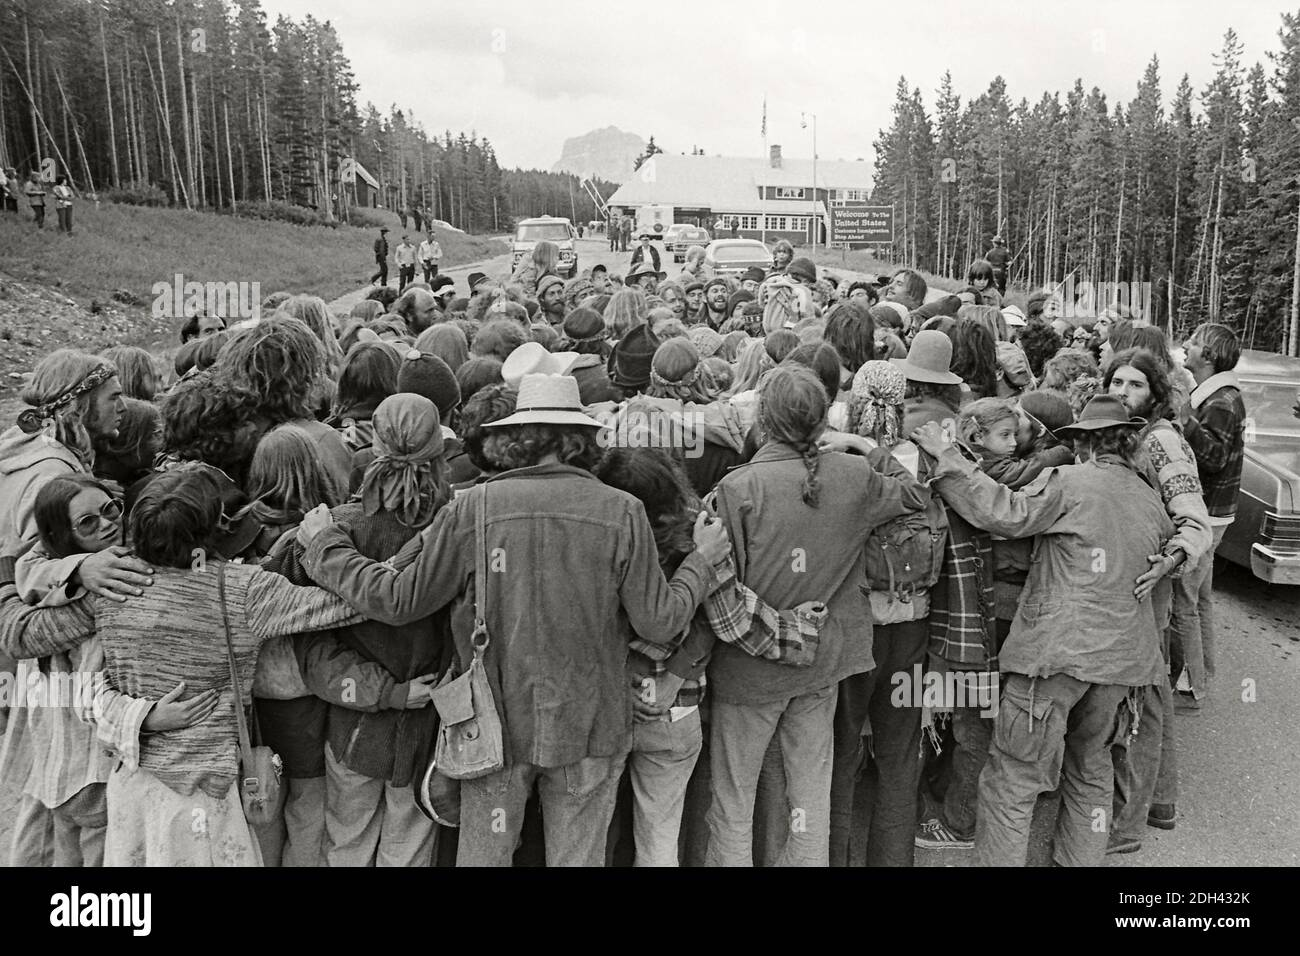 the-rainbow-family-gathers-at-the-chief-mountain-border-crossing-between-alberta-and-montana-for-a-peaceful-celebration-july-4-1976-2DH432K.jpg